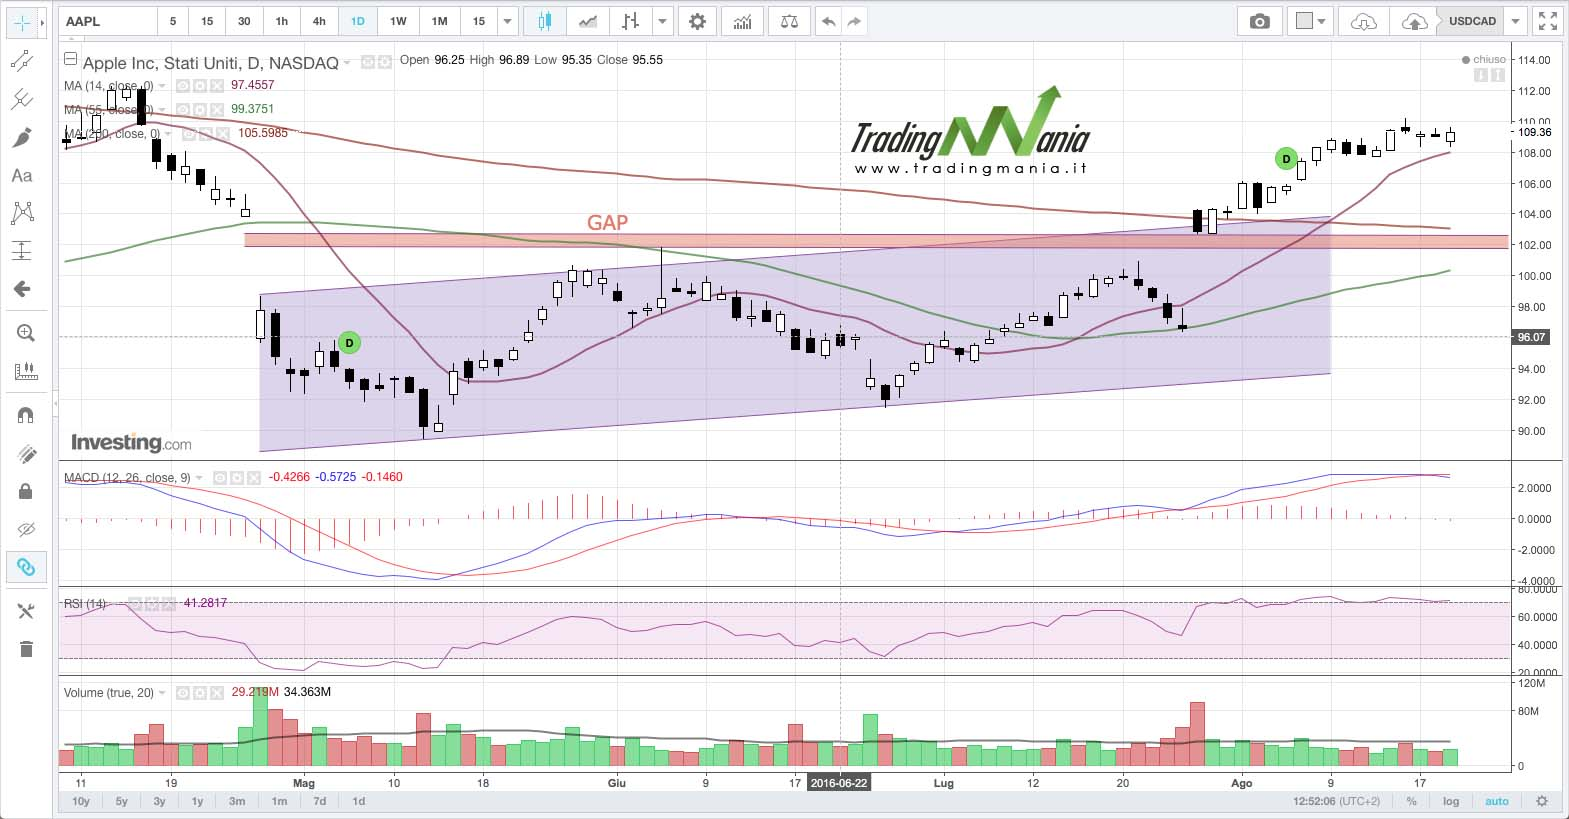 APPLE-DAILY